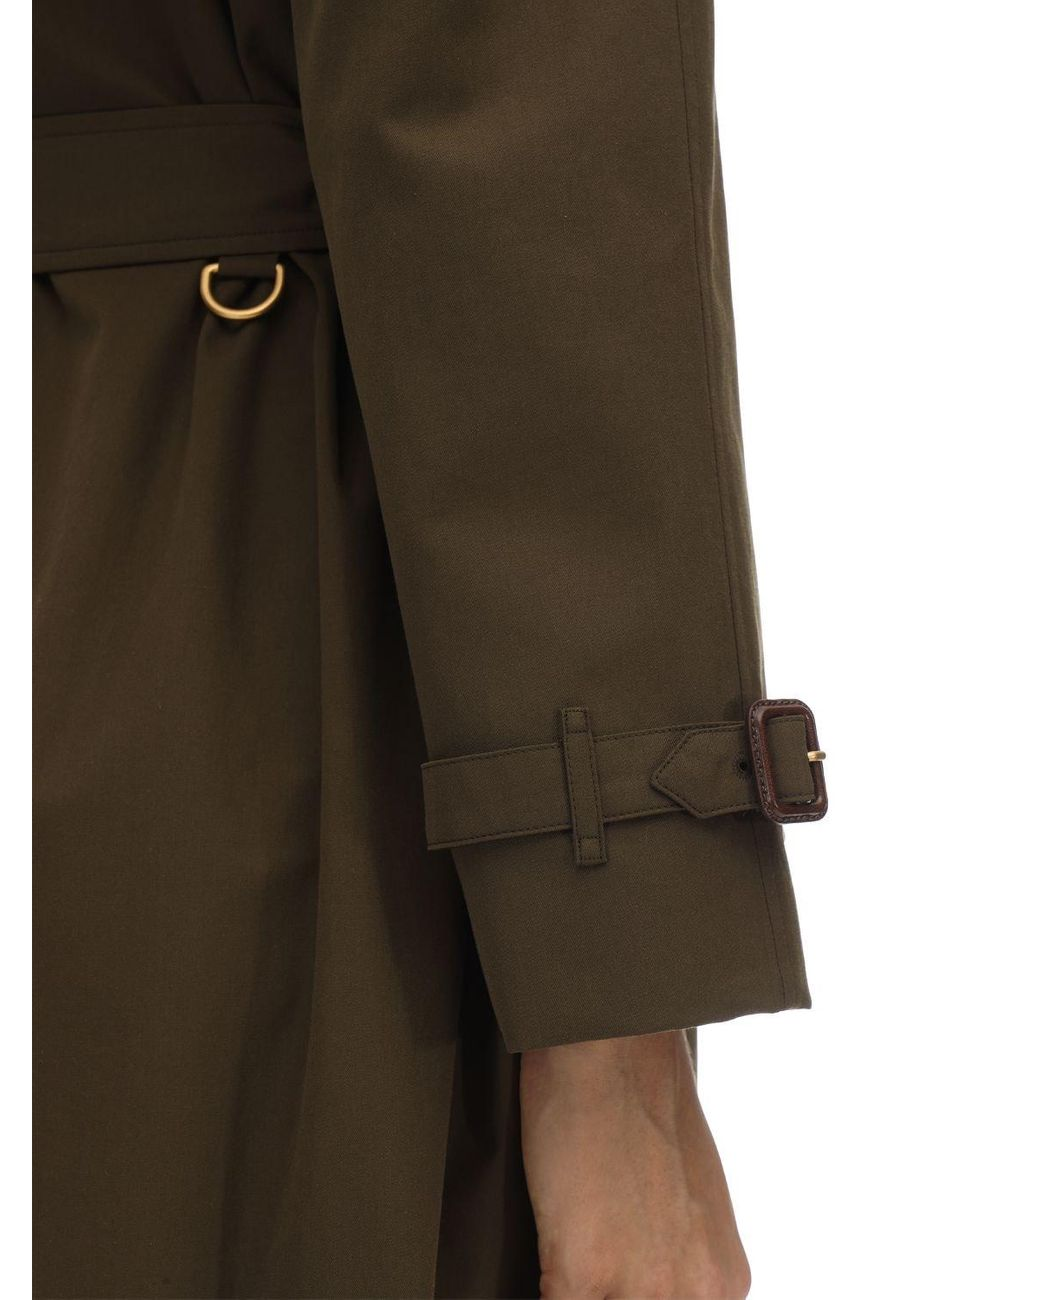 Burberry Mantel für Damen – Trenchcoat, Wollmantel, Oversize